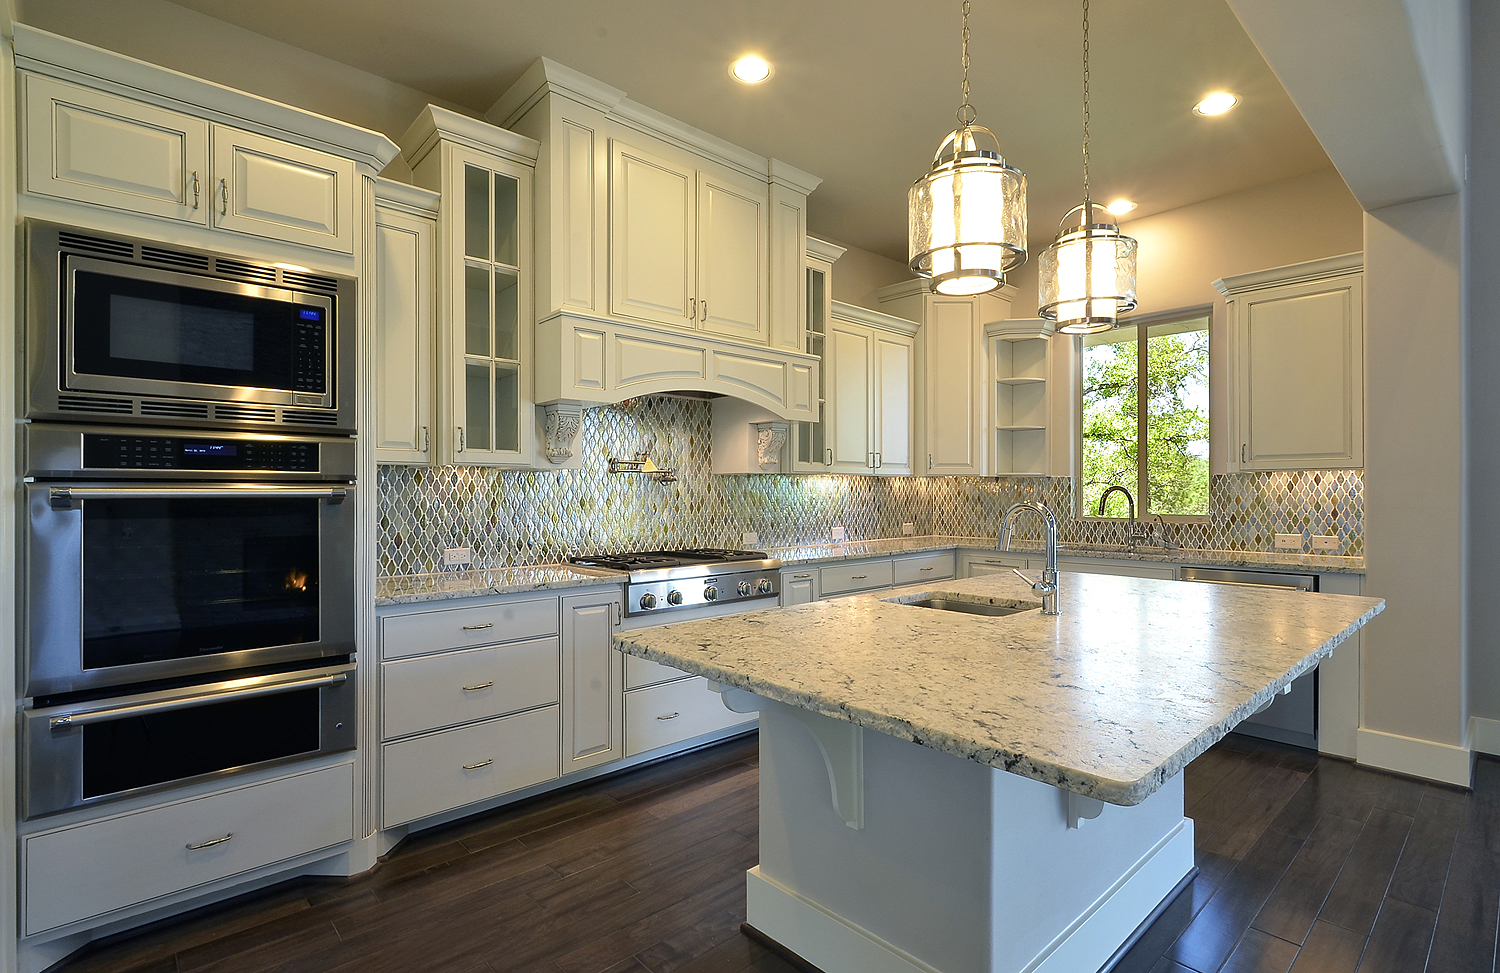 Image gallery kitchen hoods dimensions - Burrows Cabinets White Kitchen With Elite Vent Hood